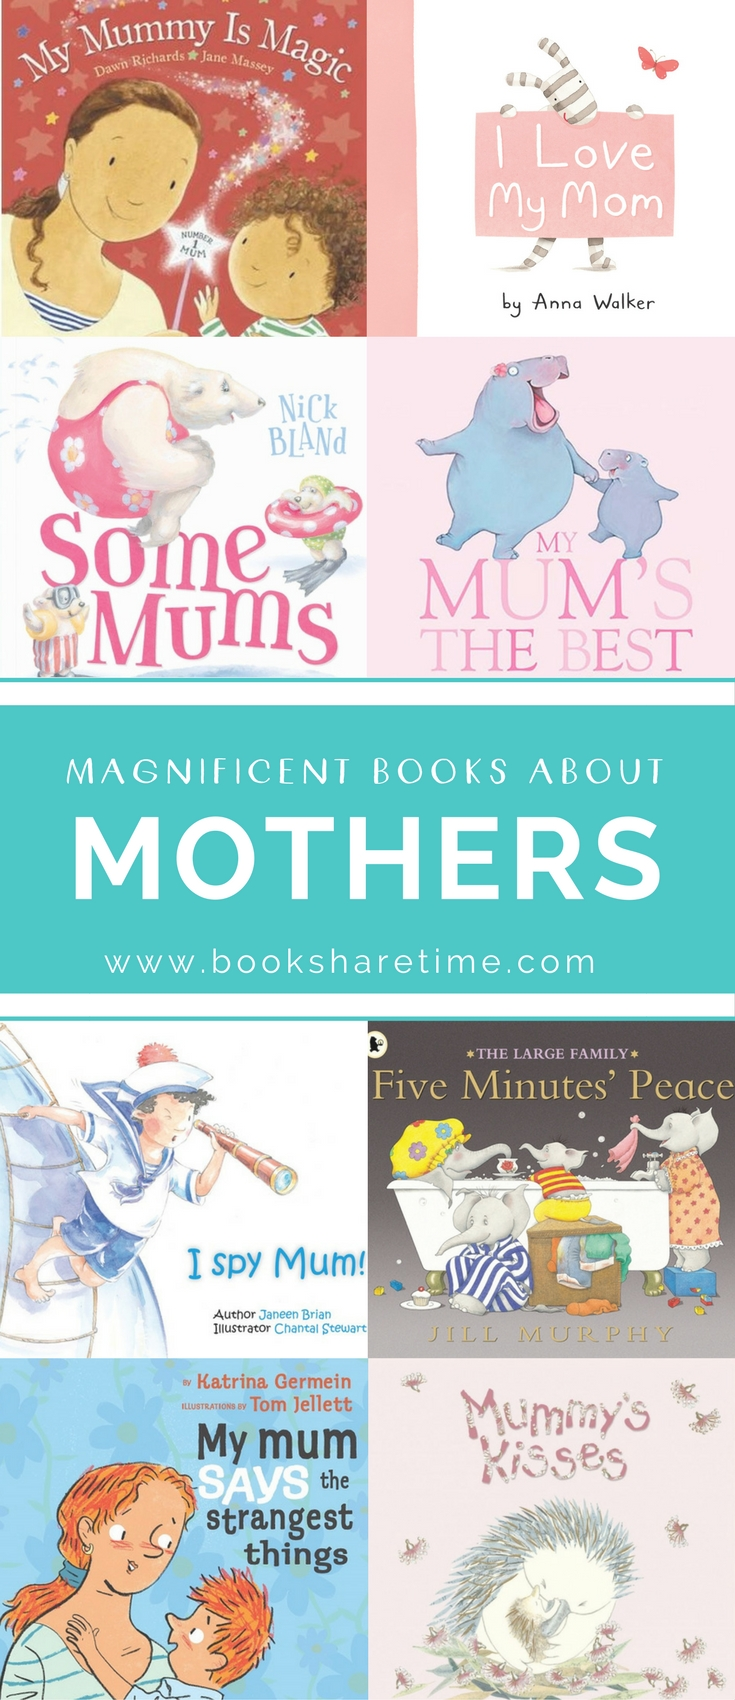 Delightful picture books that celebrate the precious love between a mother and child. Perfect for Mother's Days gifts and cozy bedtime reading.